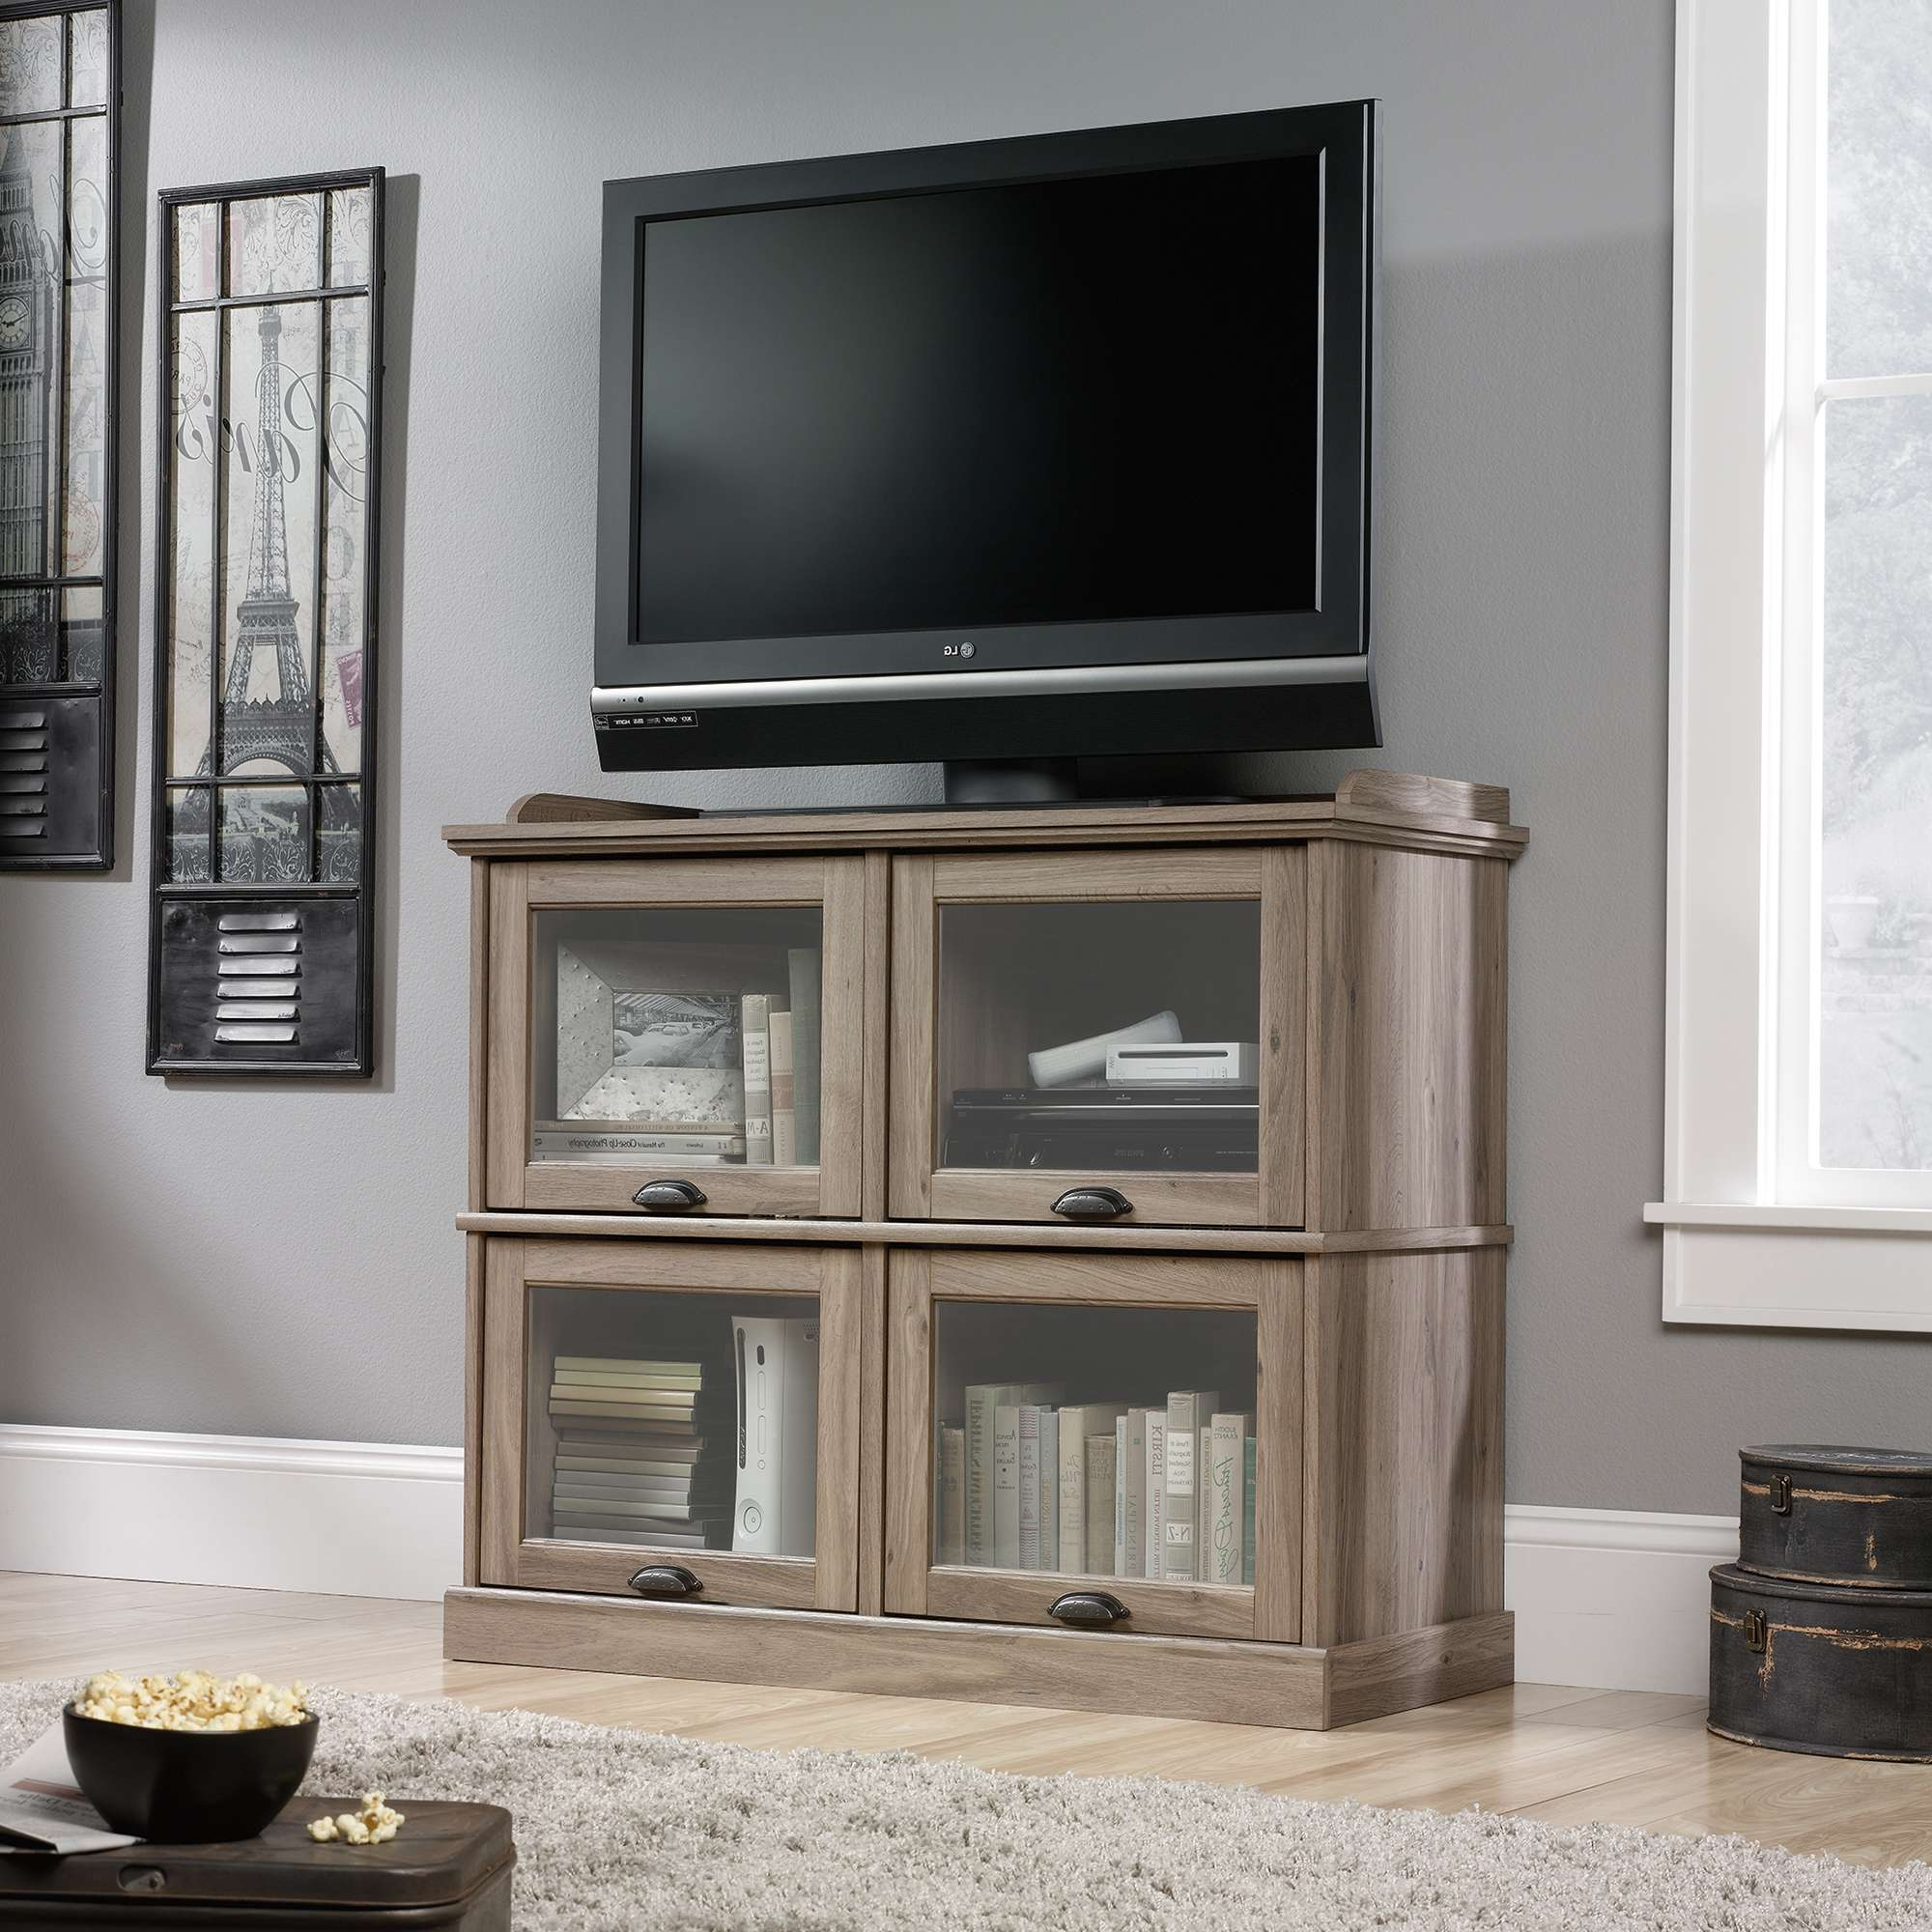 Barrister Lane | Highboy Tv Stand | 414720 | Sauder Within Lane Tv Stands (View 6 of 15)